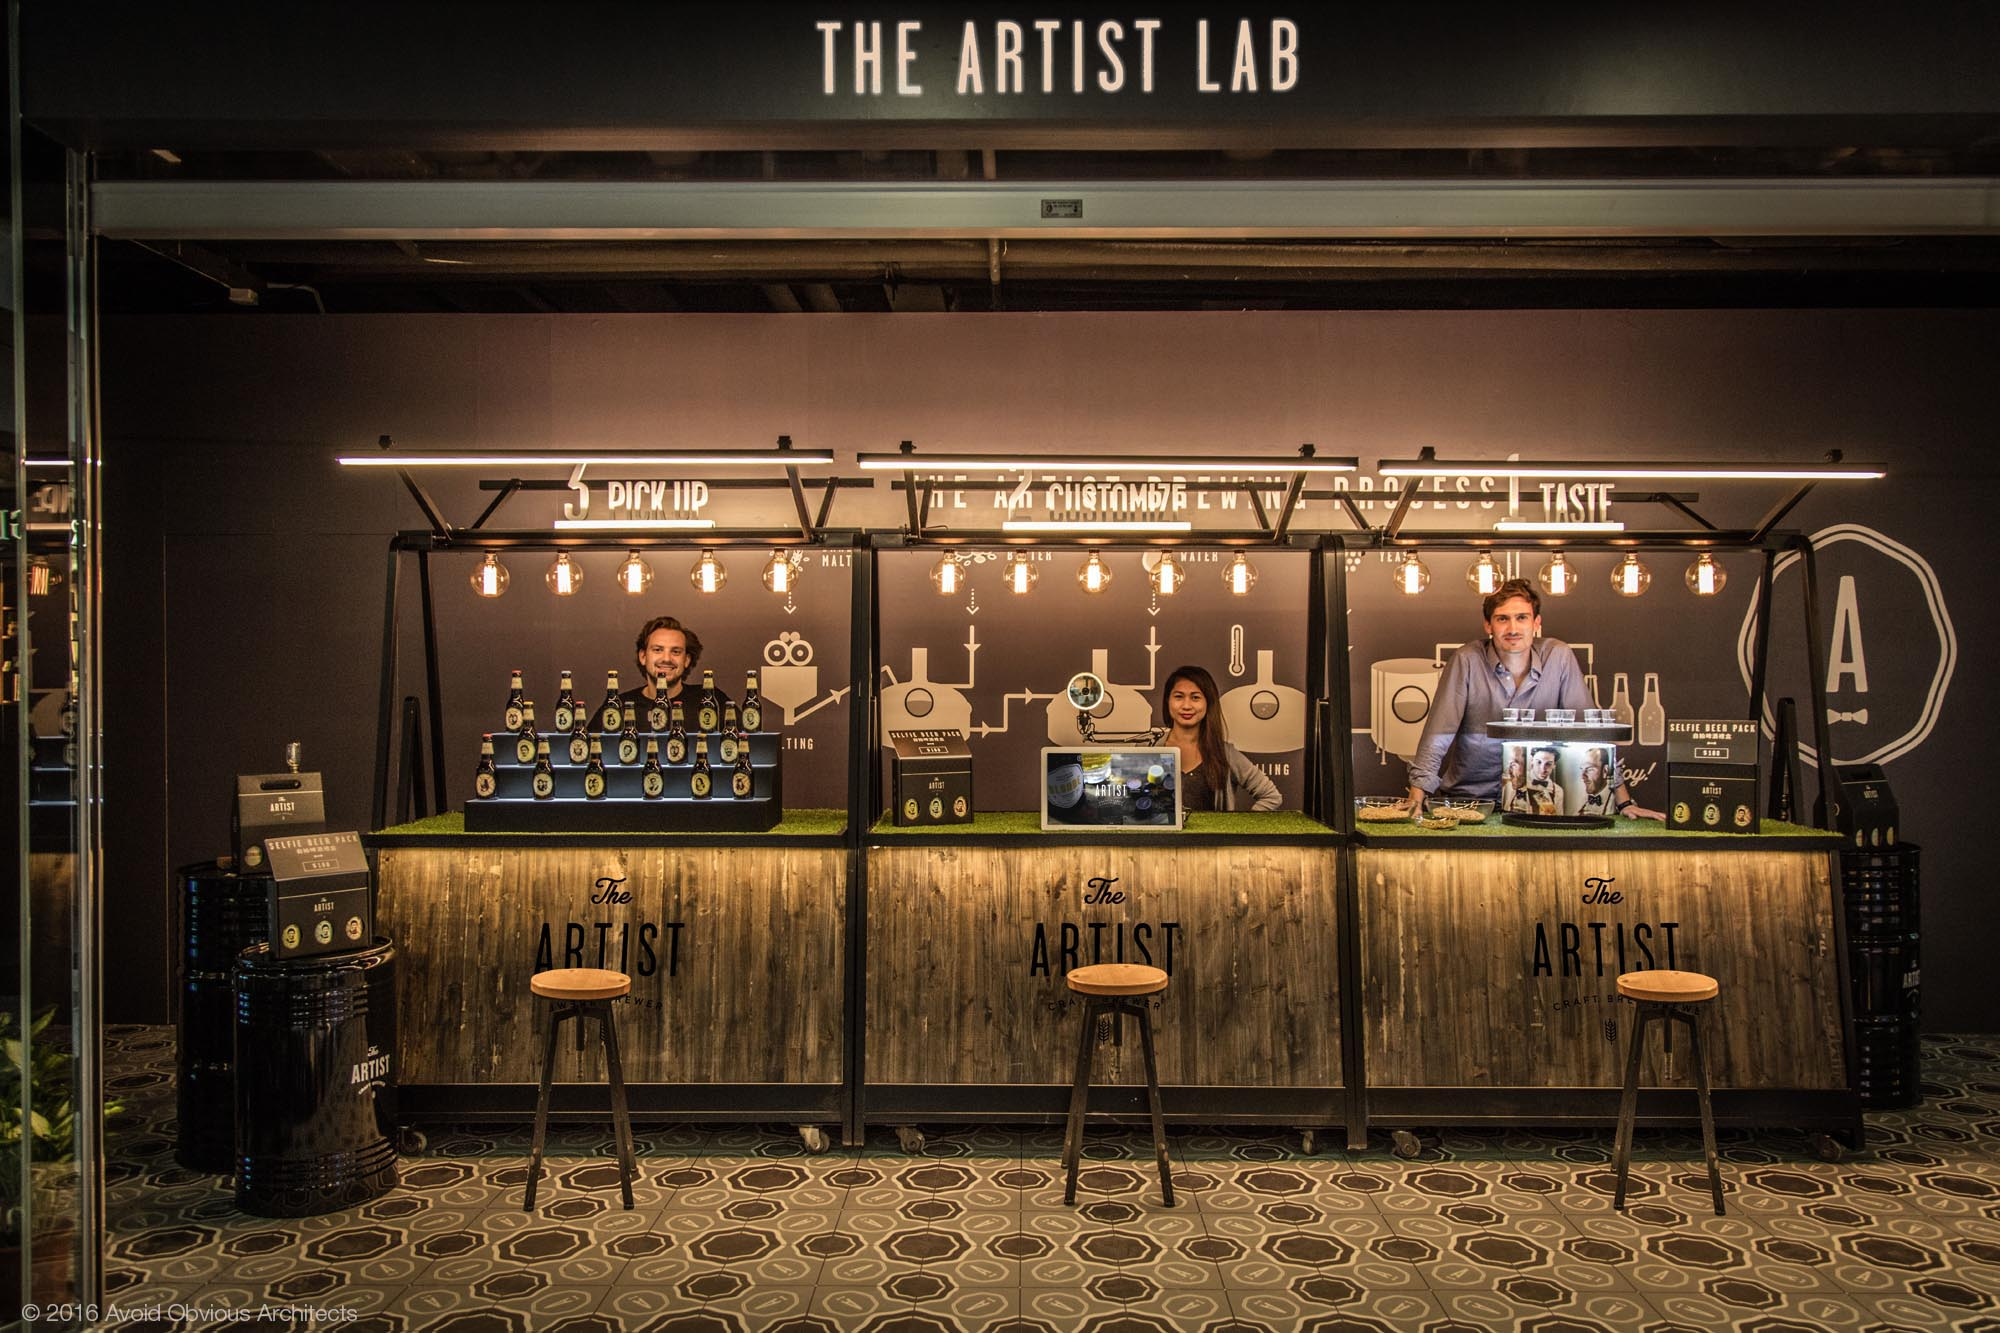 mobile bar, craft beer, the artist, avoid obvious, architecture, interior design, vintage, sustainable, bar, beer, beligum, retail, experiential, future, customization, customed